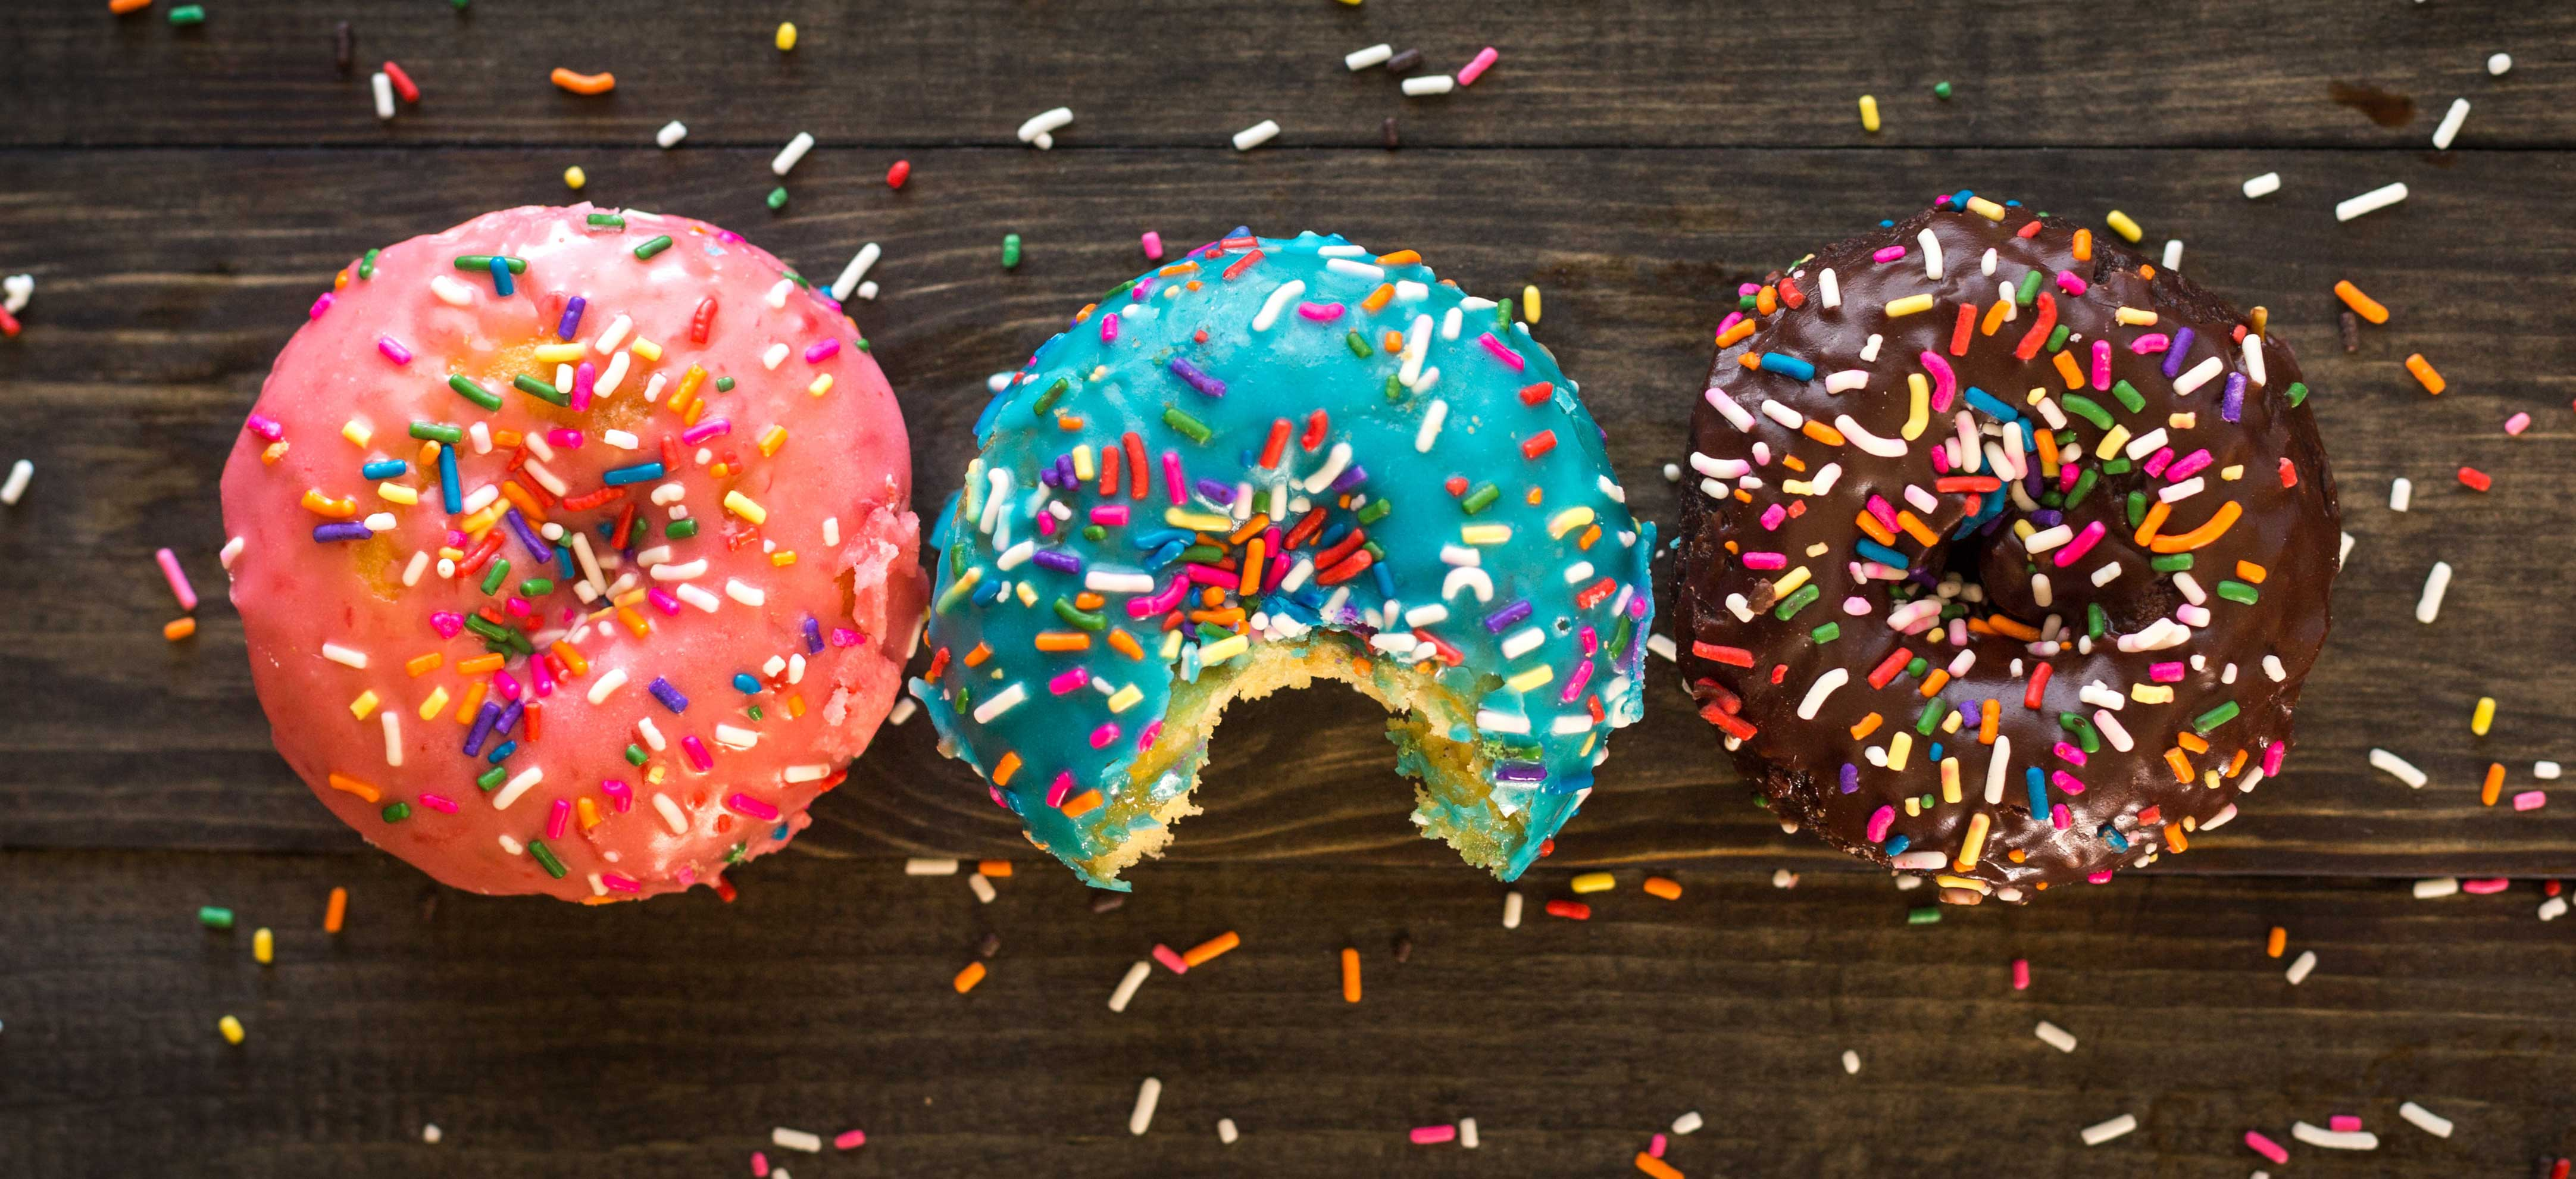 An image of 3 frosted donuts on a table.